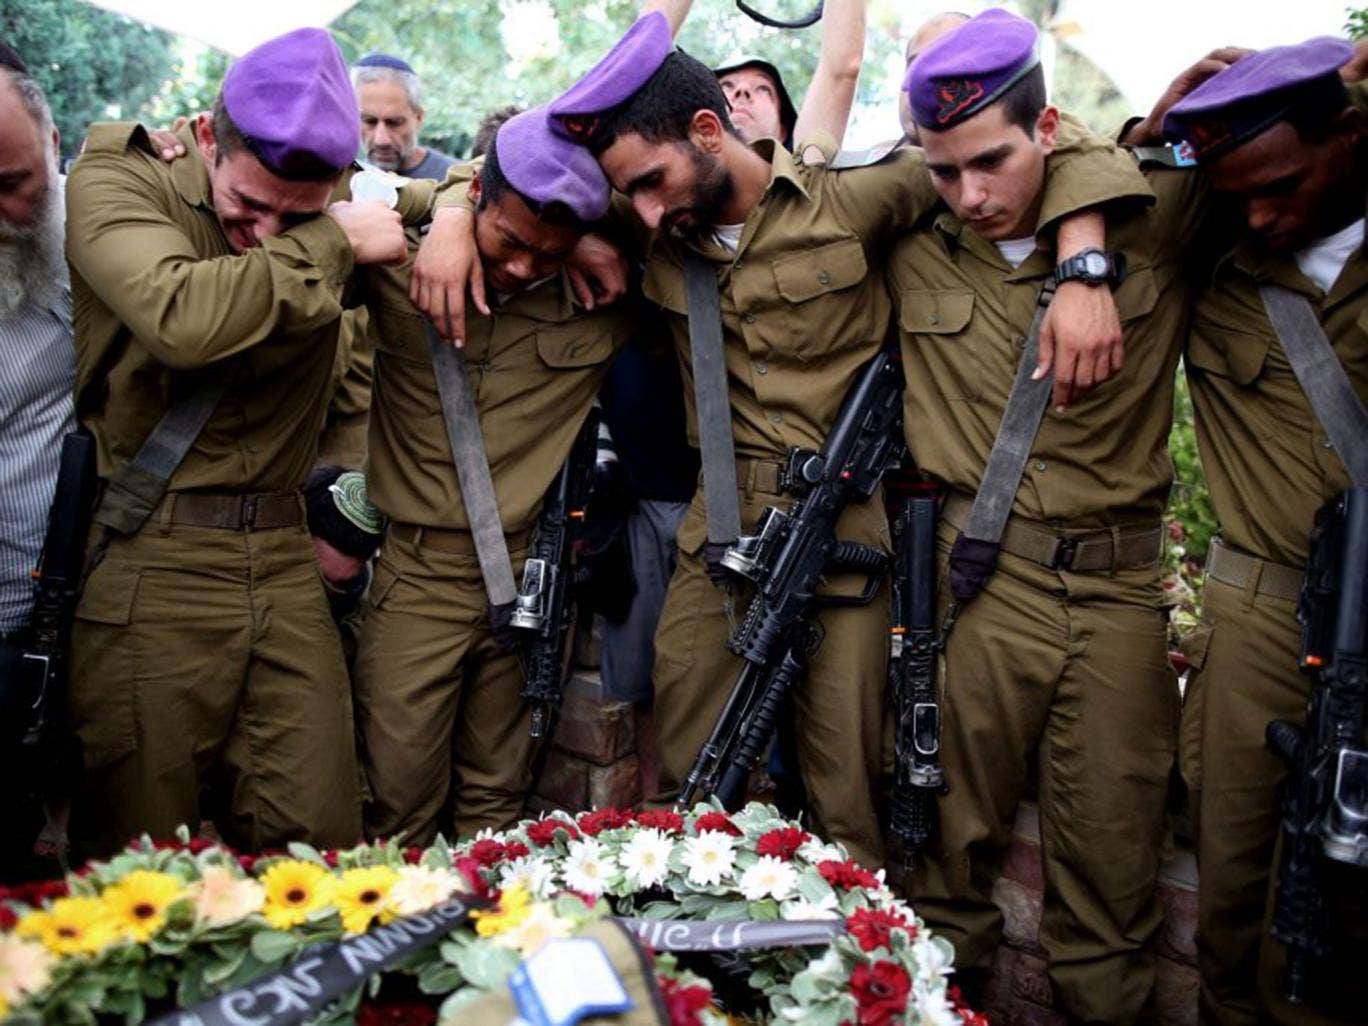 Fellow soldiers were among the 10,000 people who attended the funeral of Lt Hadar Goldin